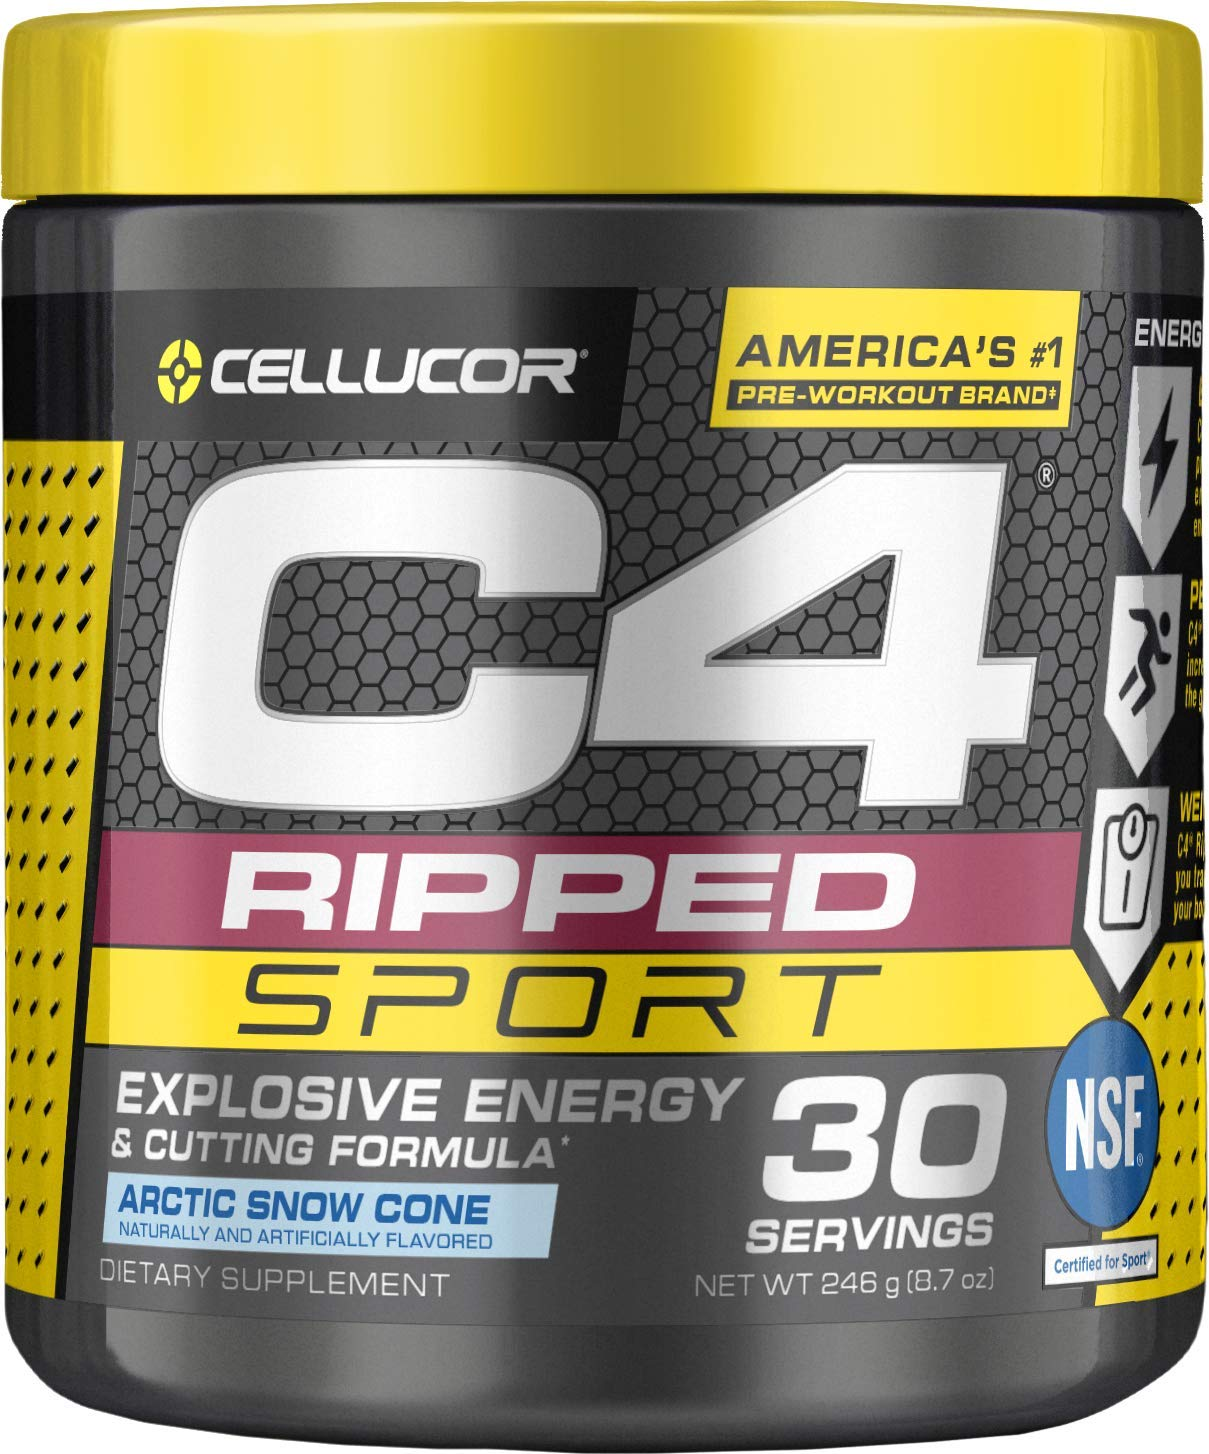 Cellucor C4 Ripped Sport Pre Workout Powder, Arctic Snow Cone, 30 Servings - Preworkout Powder for Men & Women with Green Coffee Bean Extract & L Carnitine by Cellucor